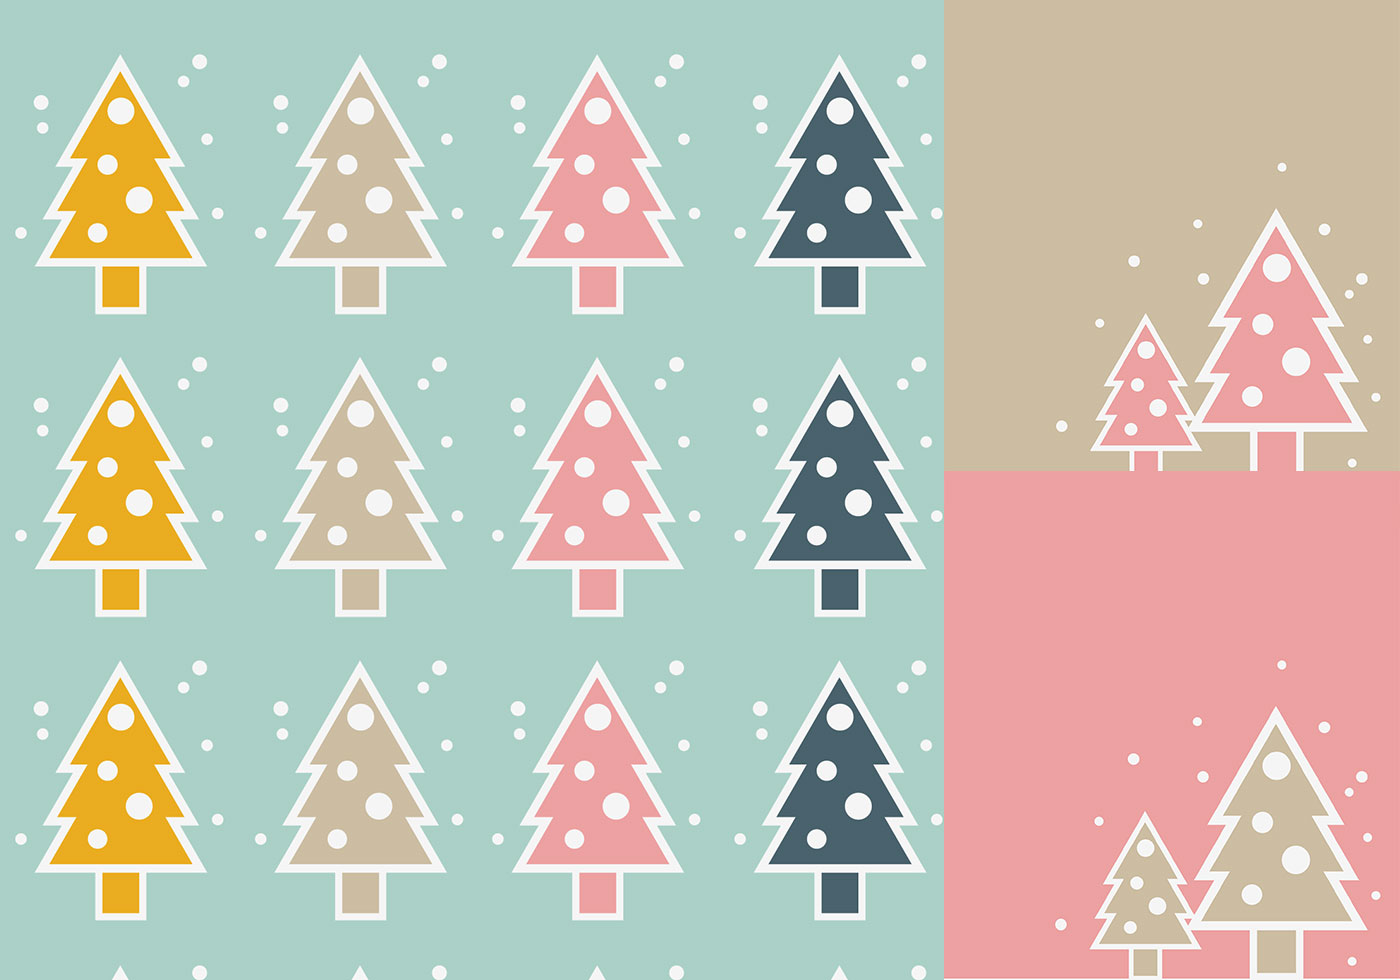 simple christmas tree vector wallpaper pack - download free vector